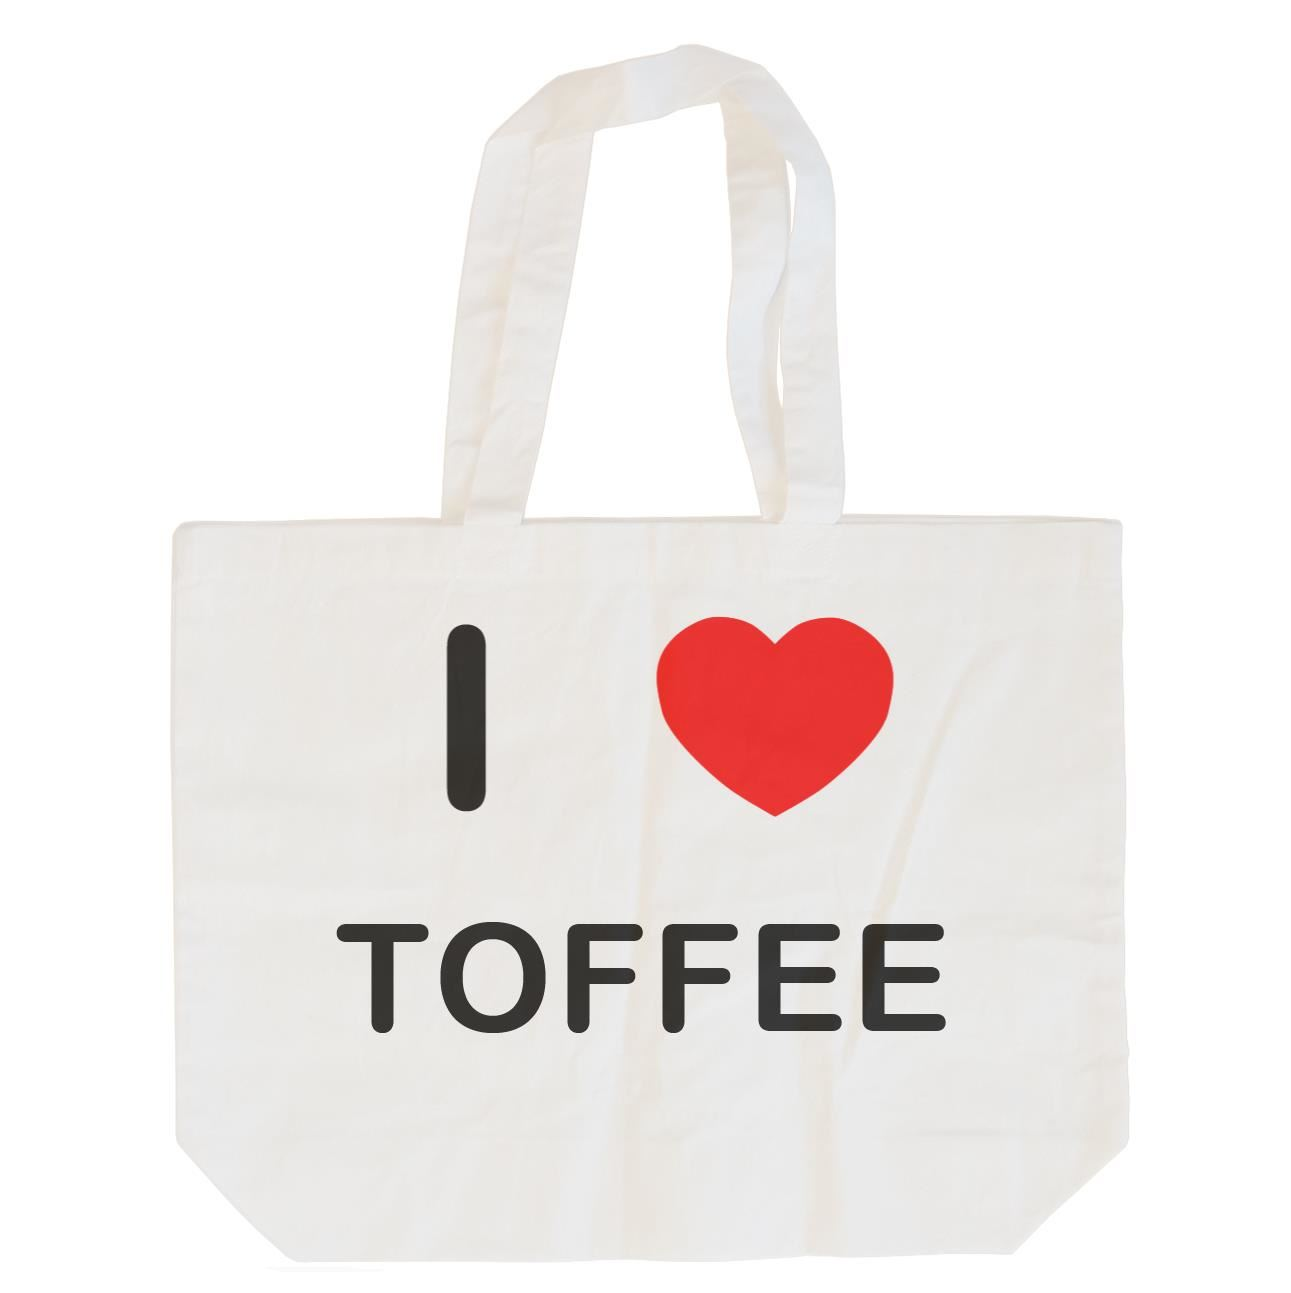 I Love Toffee - Cotton Bag | Size choice Tote, Shopper or Sling